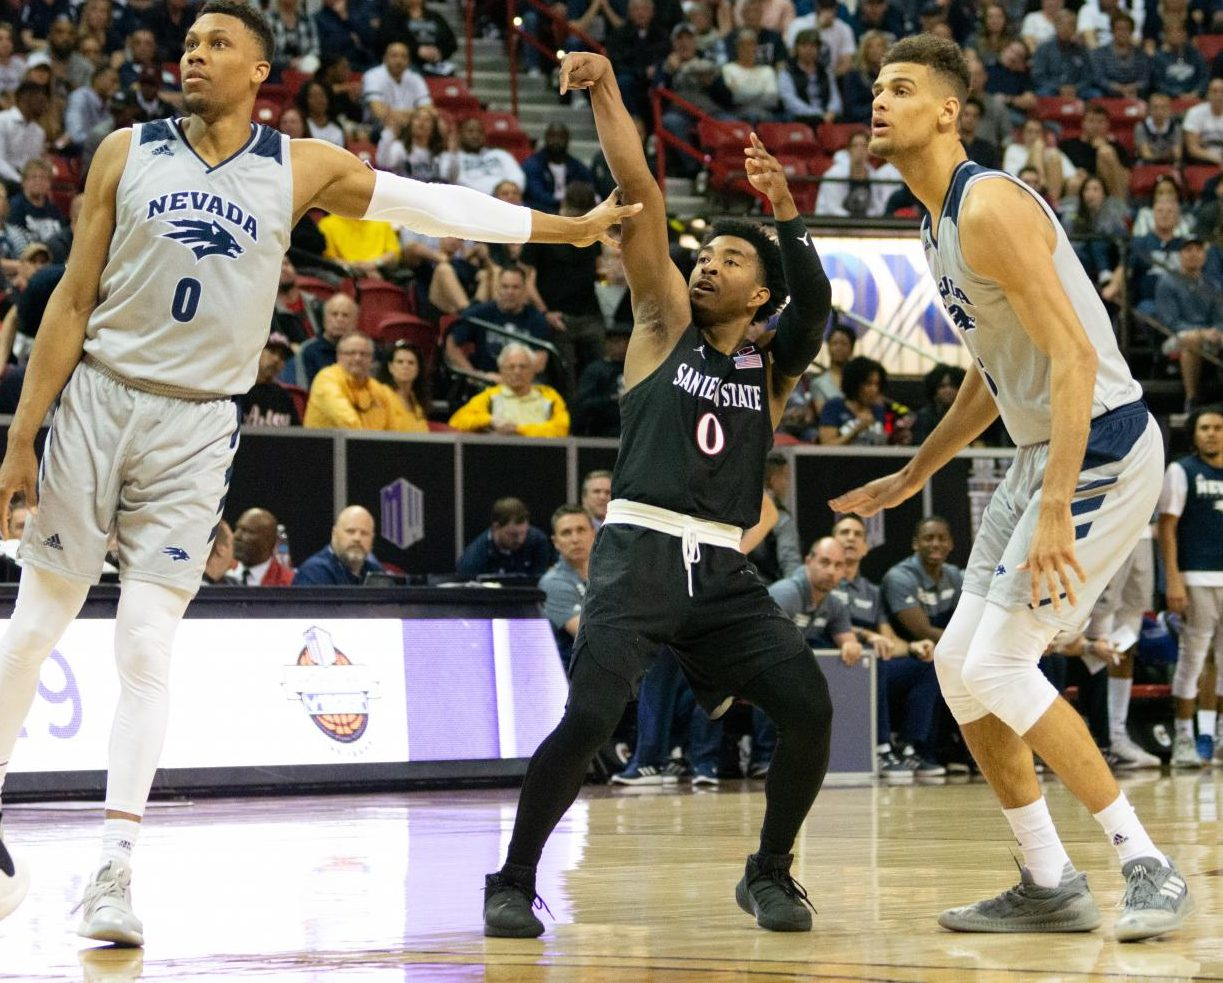 Senior guard Devin Watson launches a 3-pointer over two Nevada defenders during the Aztecs' 65-56 victory on March 16 at the Thomas and Mack Center in Las Vegas.